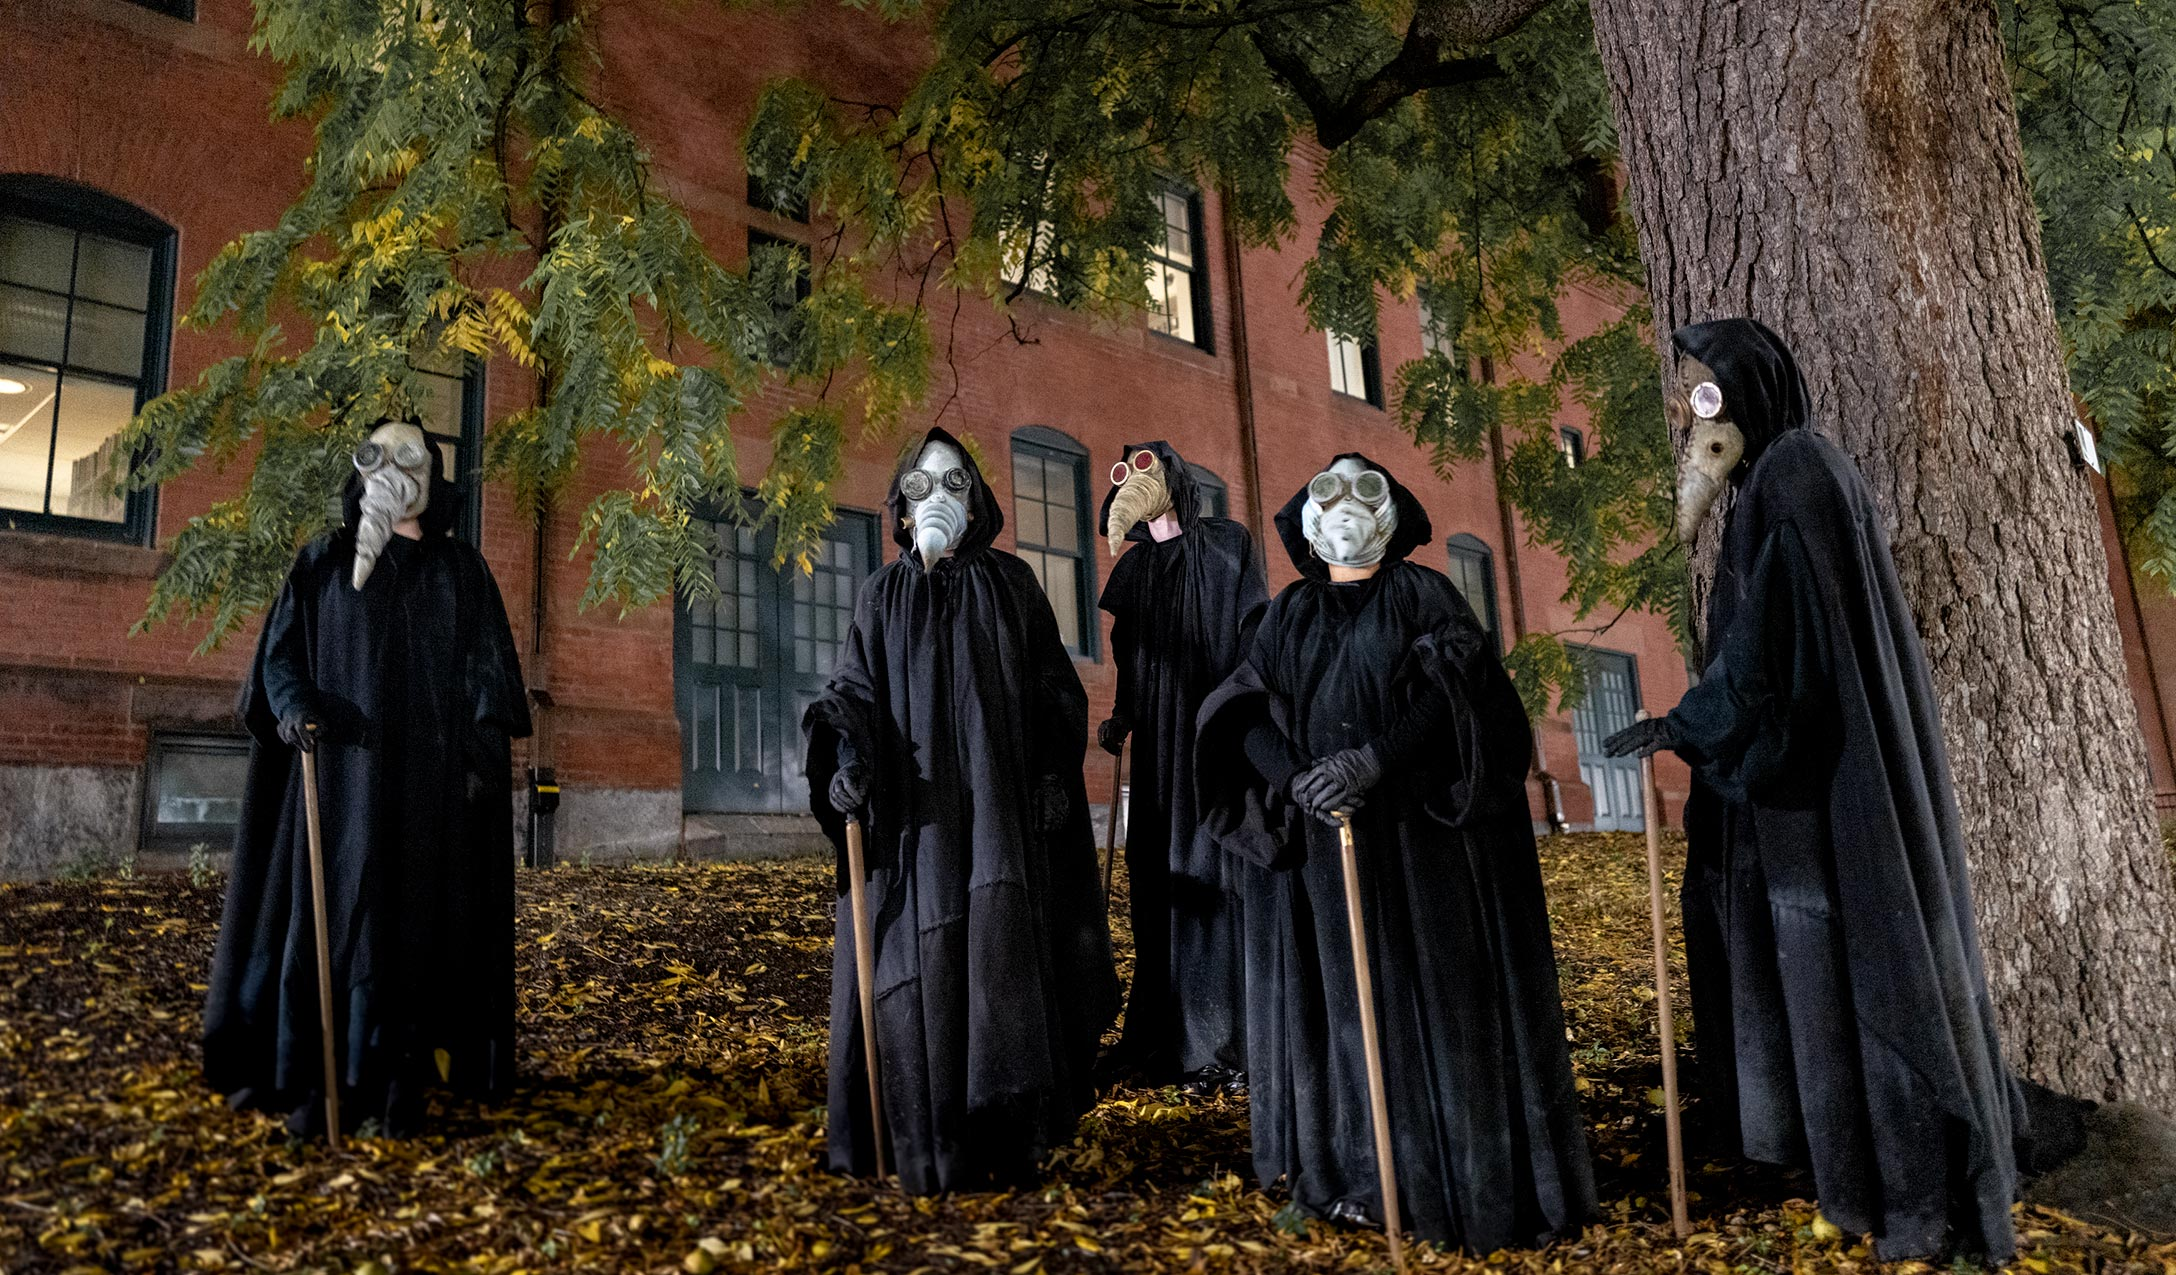 UMass theater actors in plague doctor costumes